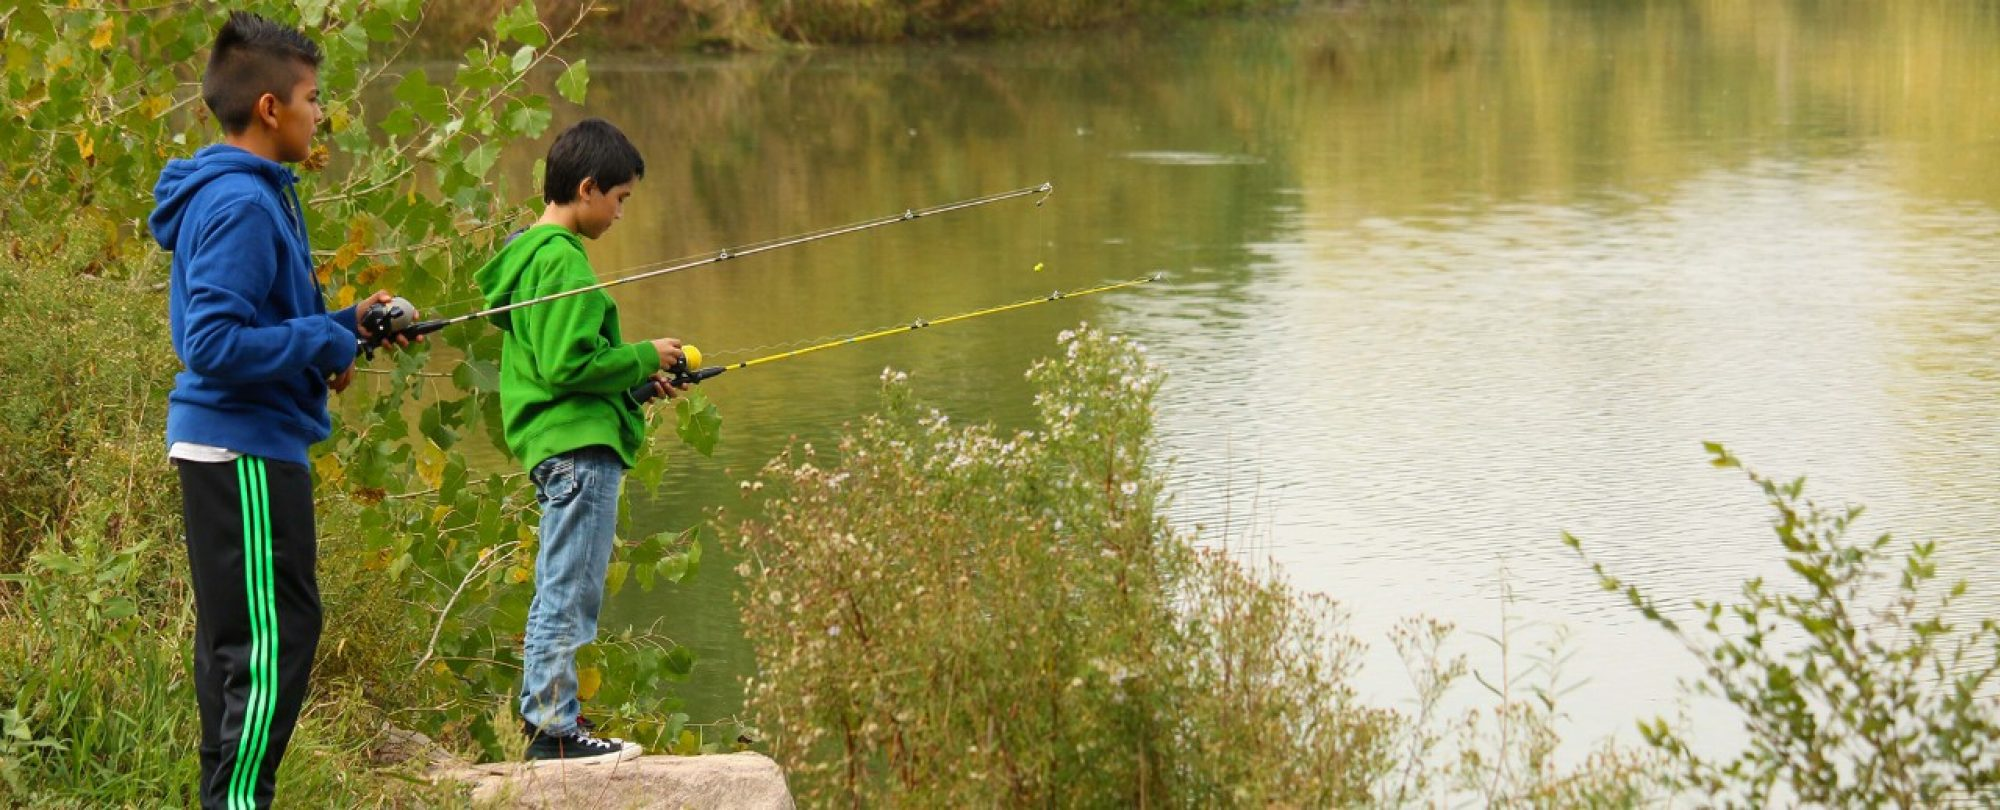 Park Ranger Fishing Program, Image shows to young kids fishing in a water source.